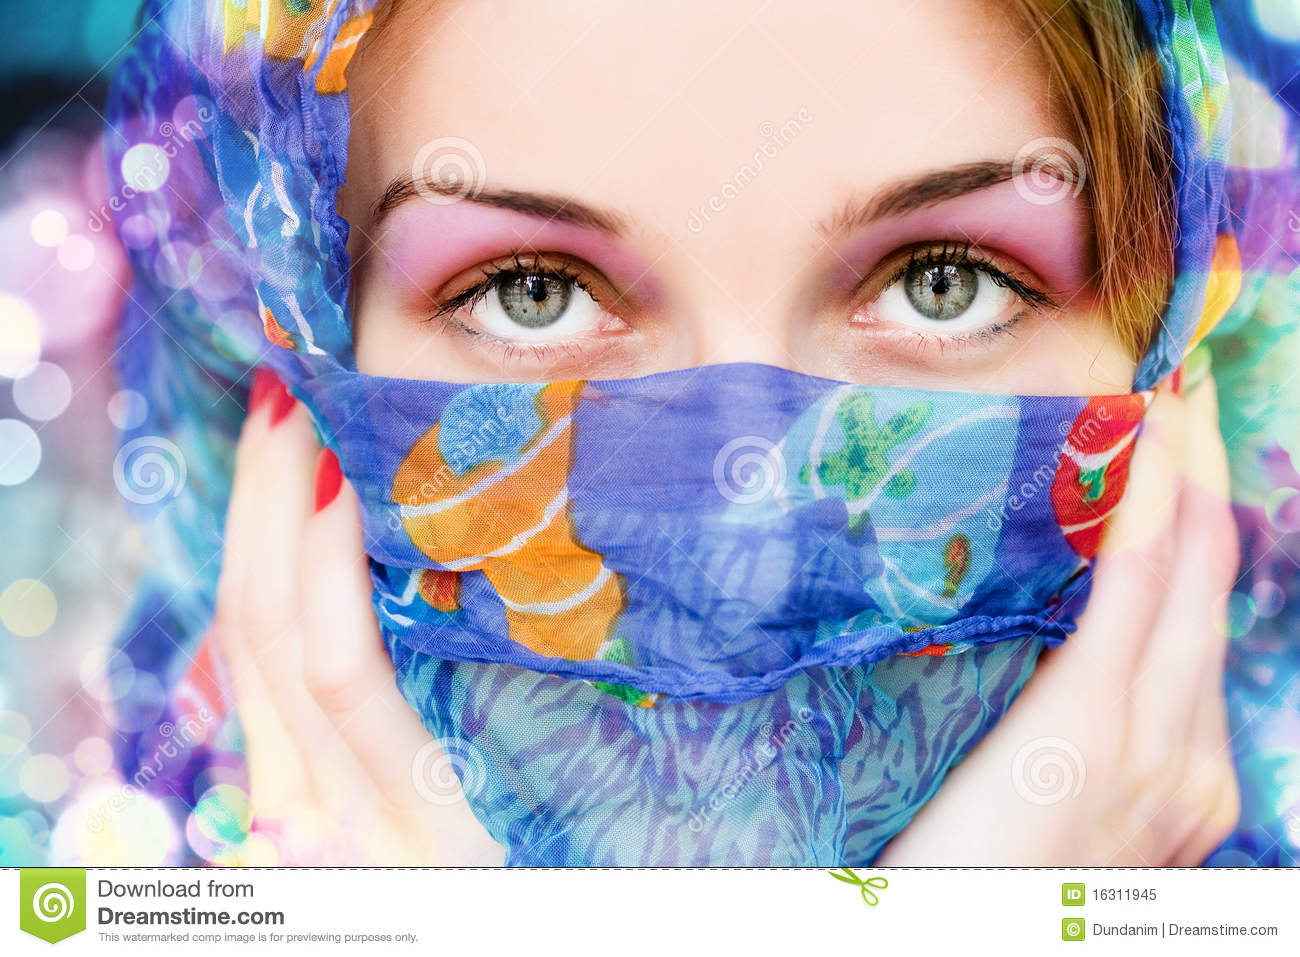 Girl Eyes Looking Up Wallpaper Woman With Beautiful Eyes And Colorful Scarf Stock Image